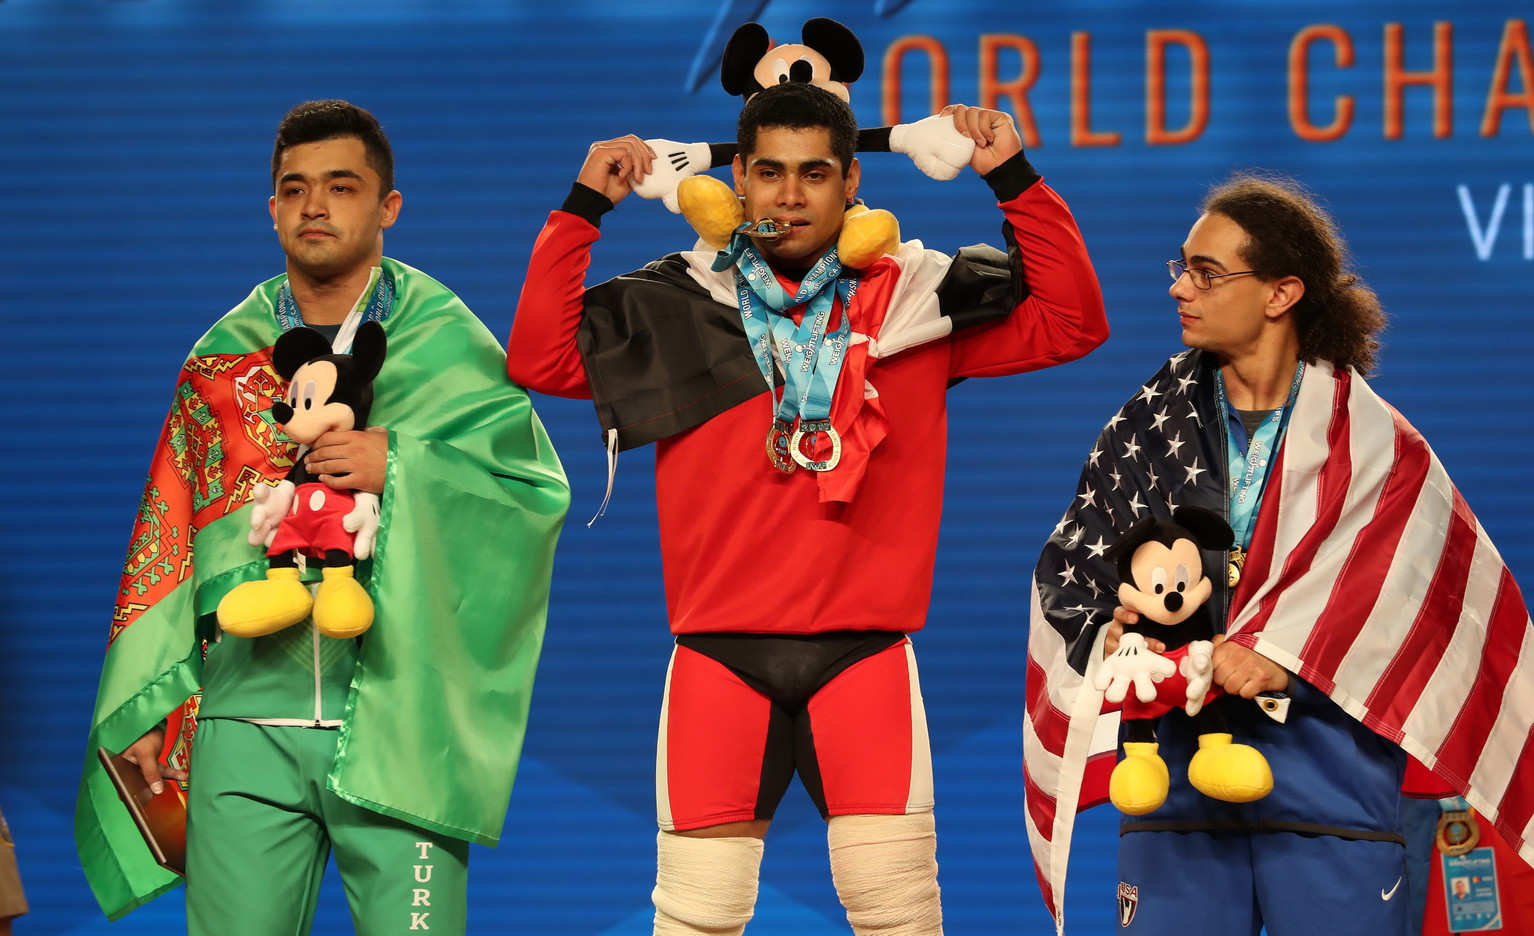 Mahmoud cruises to men's 77kg title as Maurus ends US's 20-year medal drought at IWF World Championships